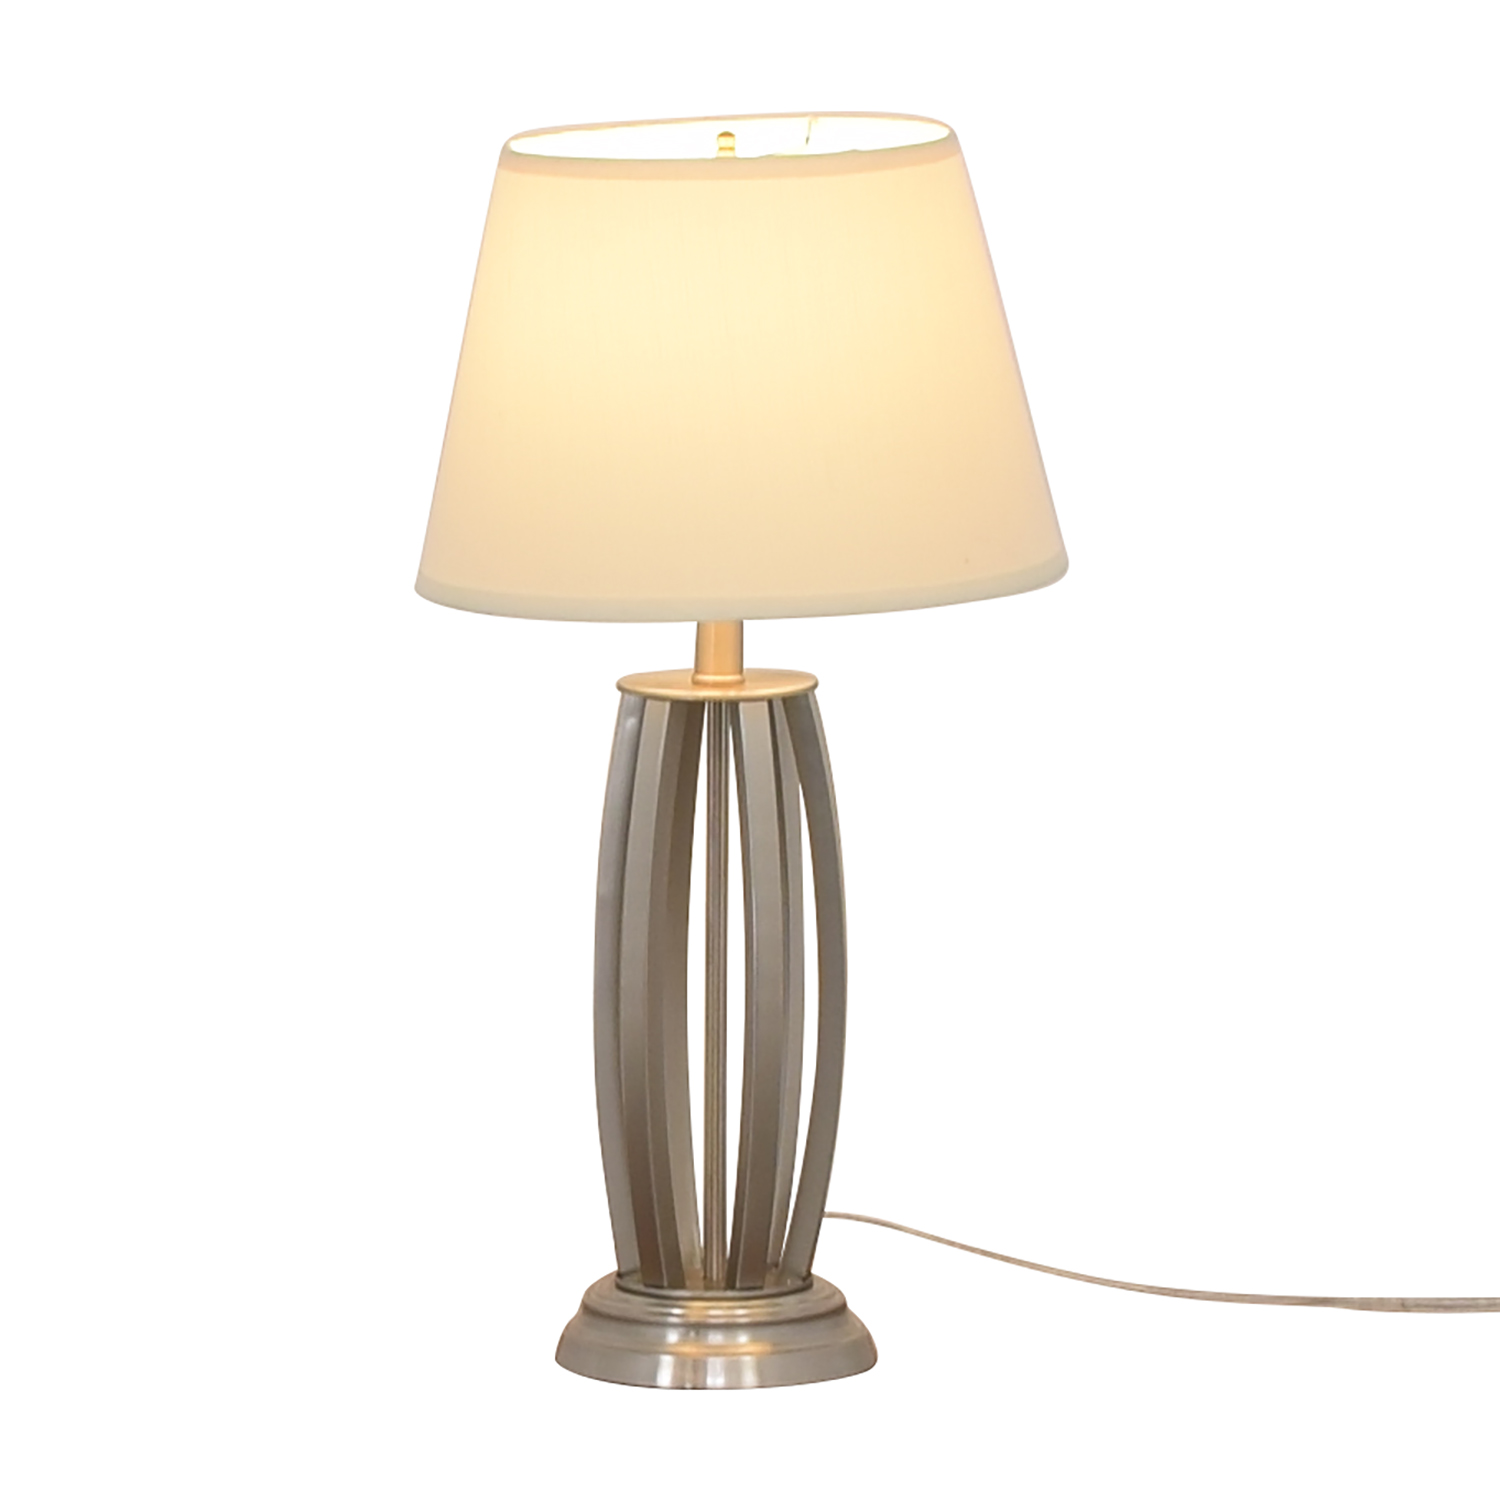 Chrome Table Lamp / Lamps